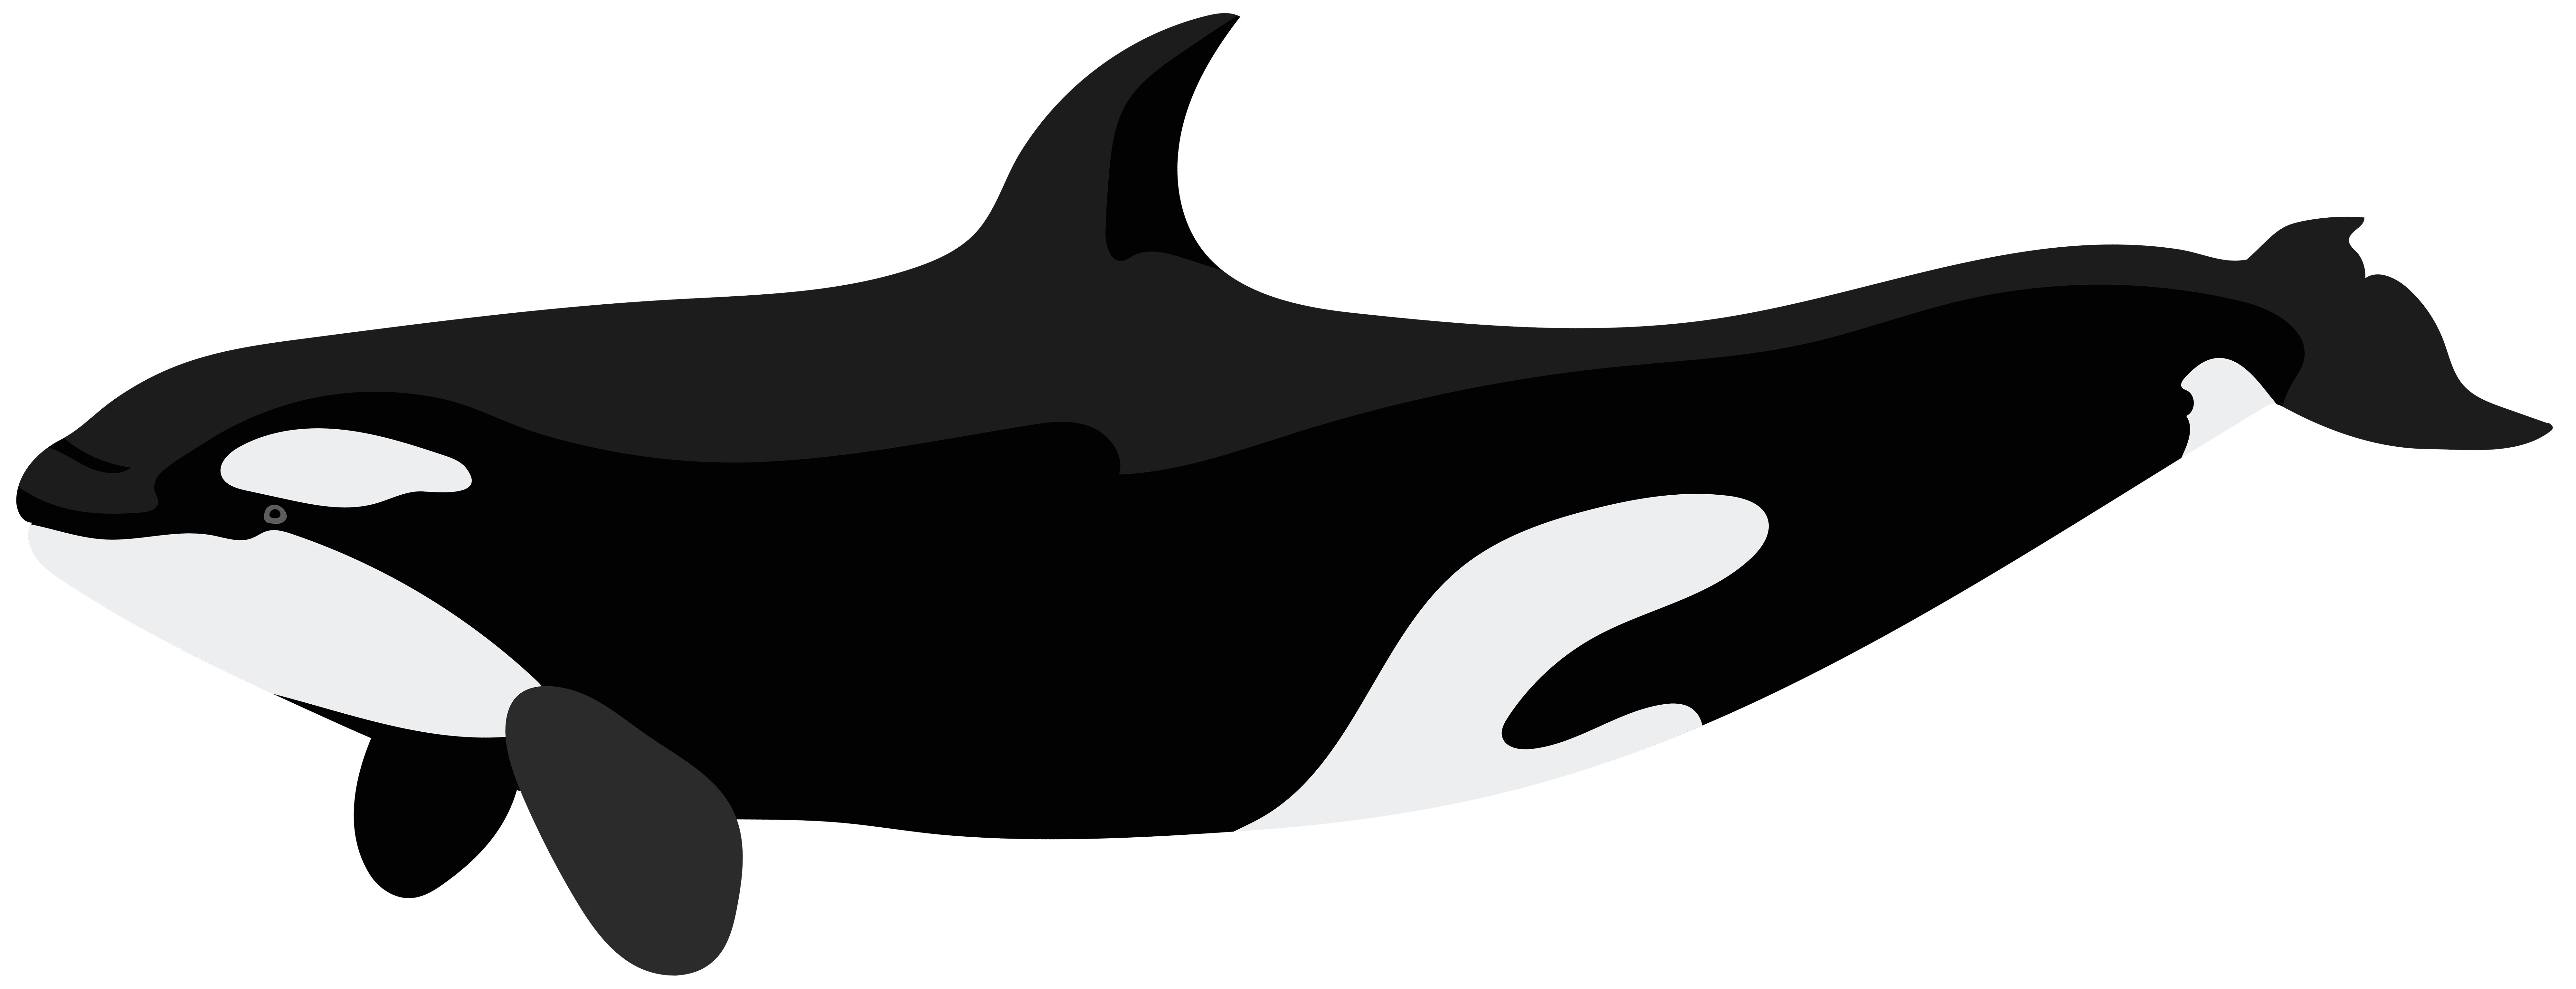 Orca whale png. Killer dolphin clip art